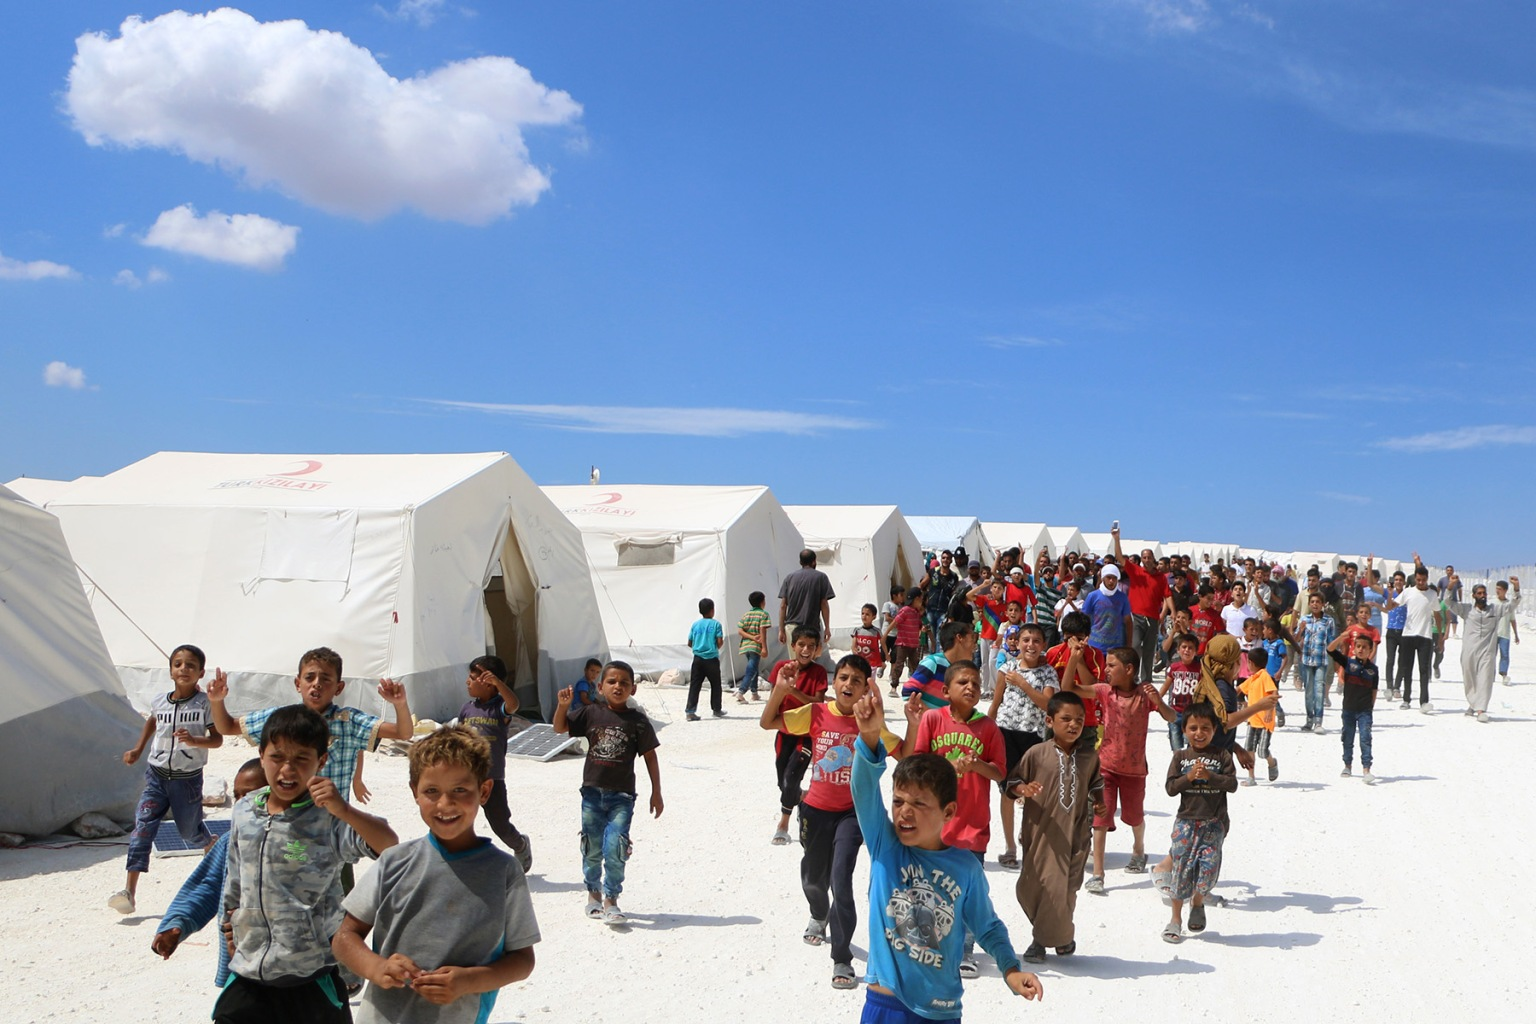 Displaced Syrians take part in a protest against the regime and its ally Russia at a camp for displaced people in Kafr Lusin near the Bab al-Hawa border crossing with Turkey in Syria's northern Idlib province on Sept. 7. AAREF WATAD/AFP/Getty Images